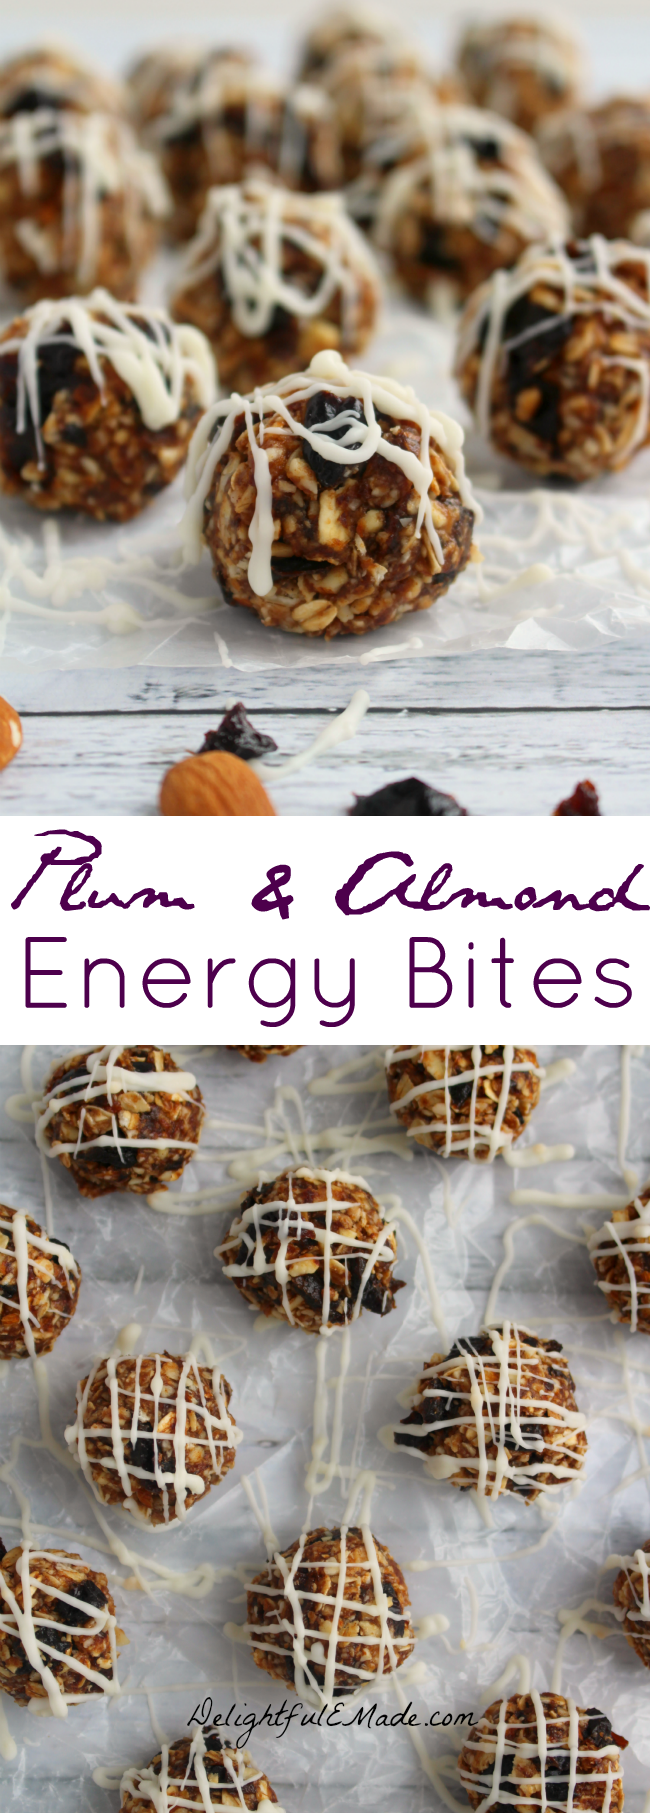 are a good source of fiber for only 100 calories per serving. Amaz!n Prunes are nature's perfect way to feel good with nutrition and delicious taste. Prunes also have a low glycemic index, which means they keep you feeling fuller longer. They add a powerful boost of nutrition and fiber to snack time or your favorite recipe.